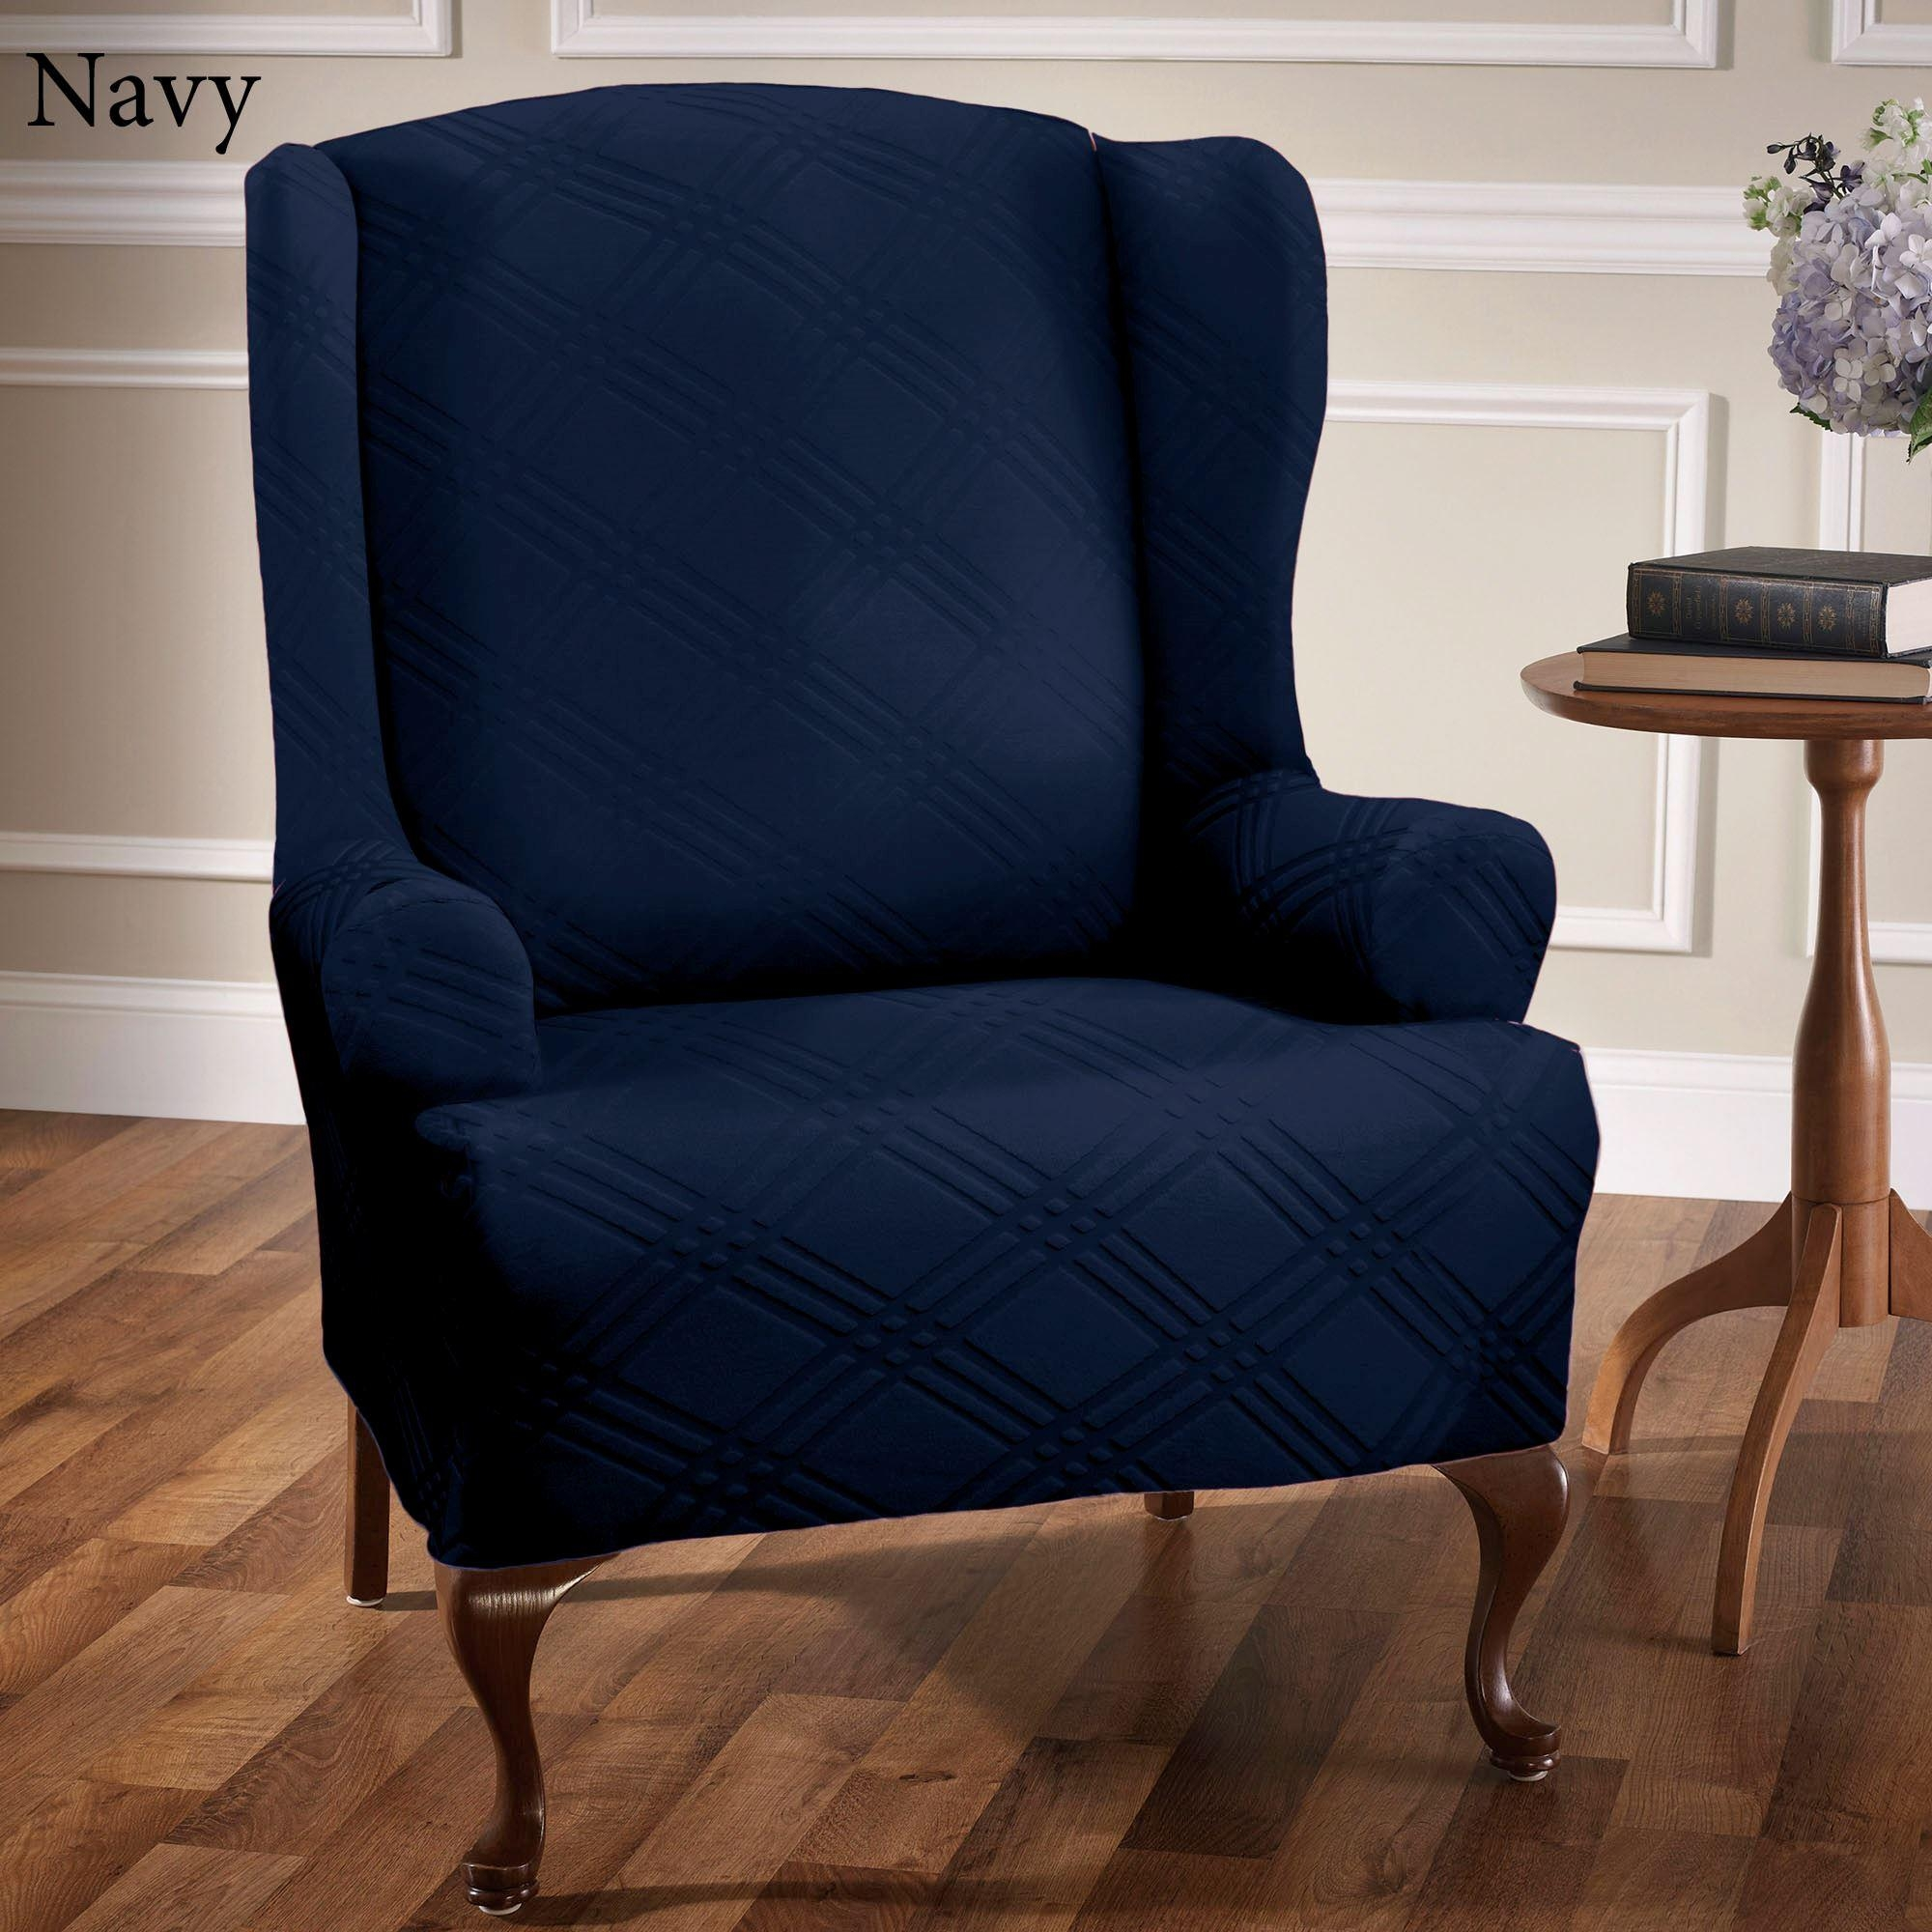 Furniture: Magnificent Top Class Wingback Chair Slipcovers Pertaining To Blue Slipcovers (Image 8 of 20)